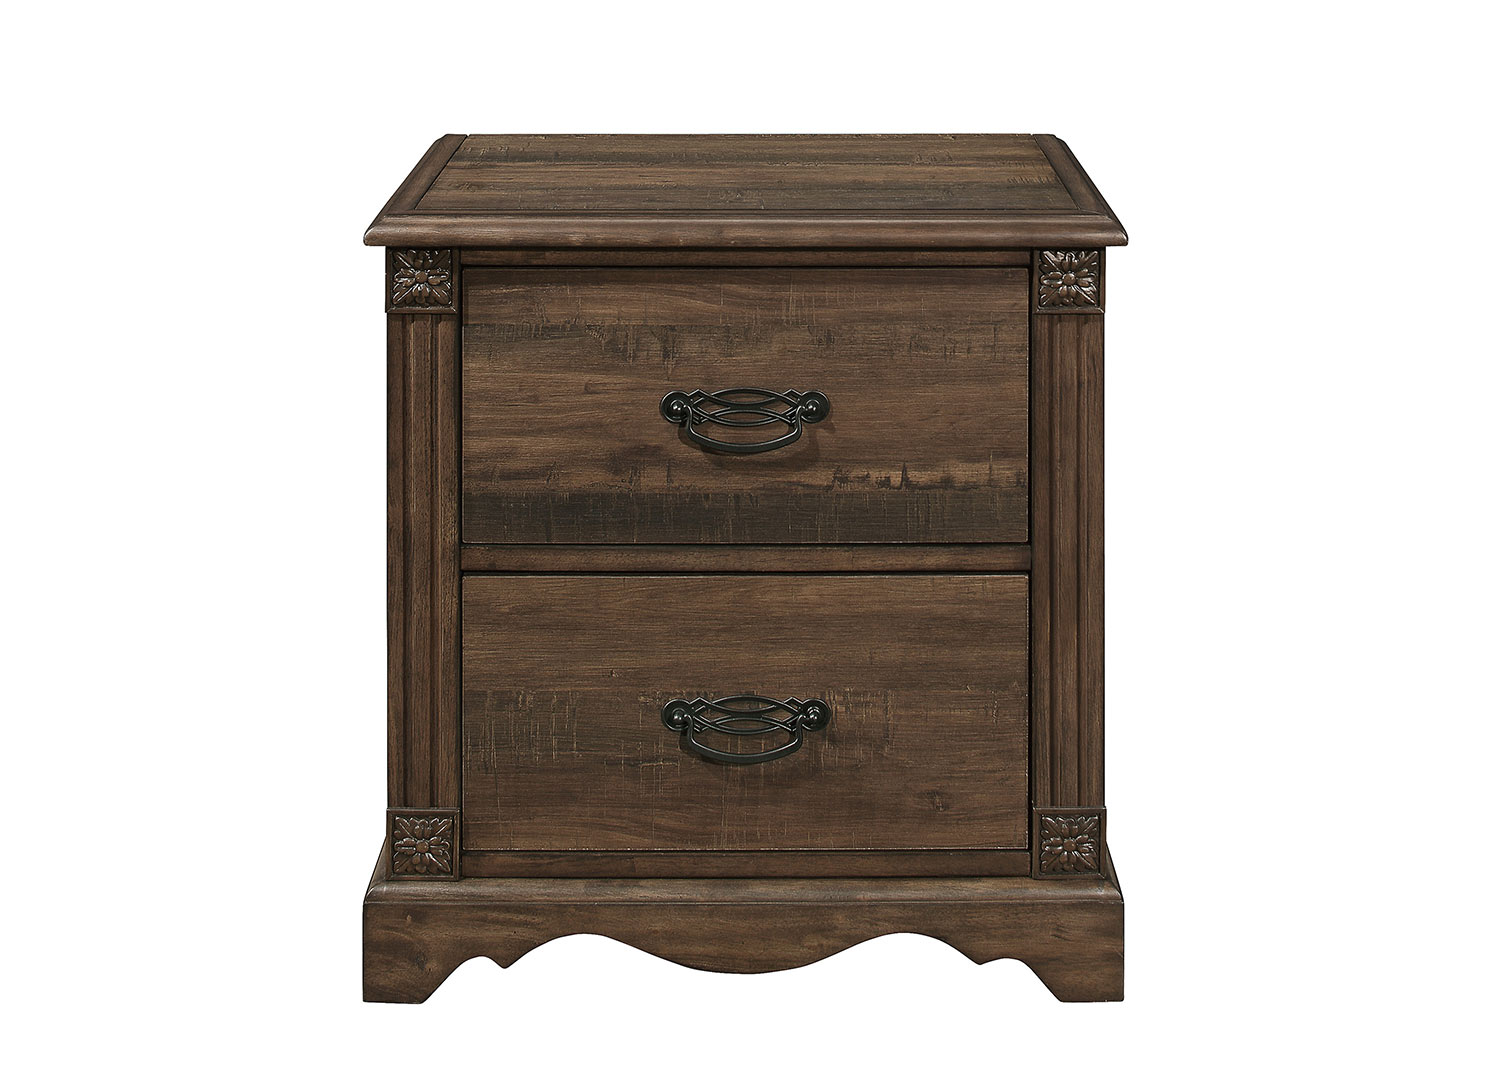 Homelegance Beaver Creek Night Stand - Rustic Brown